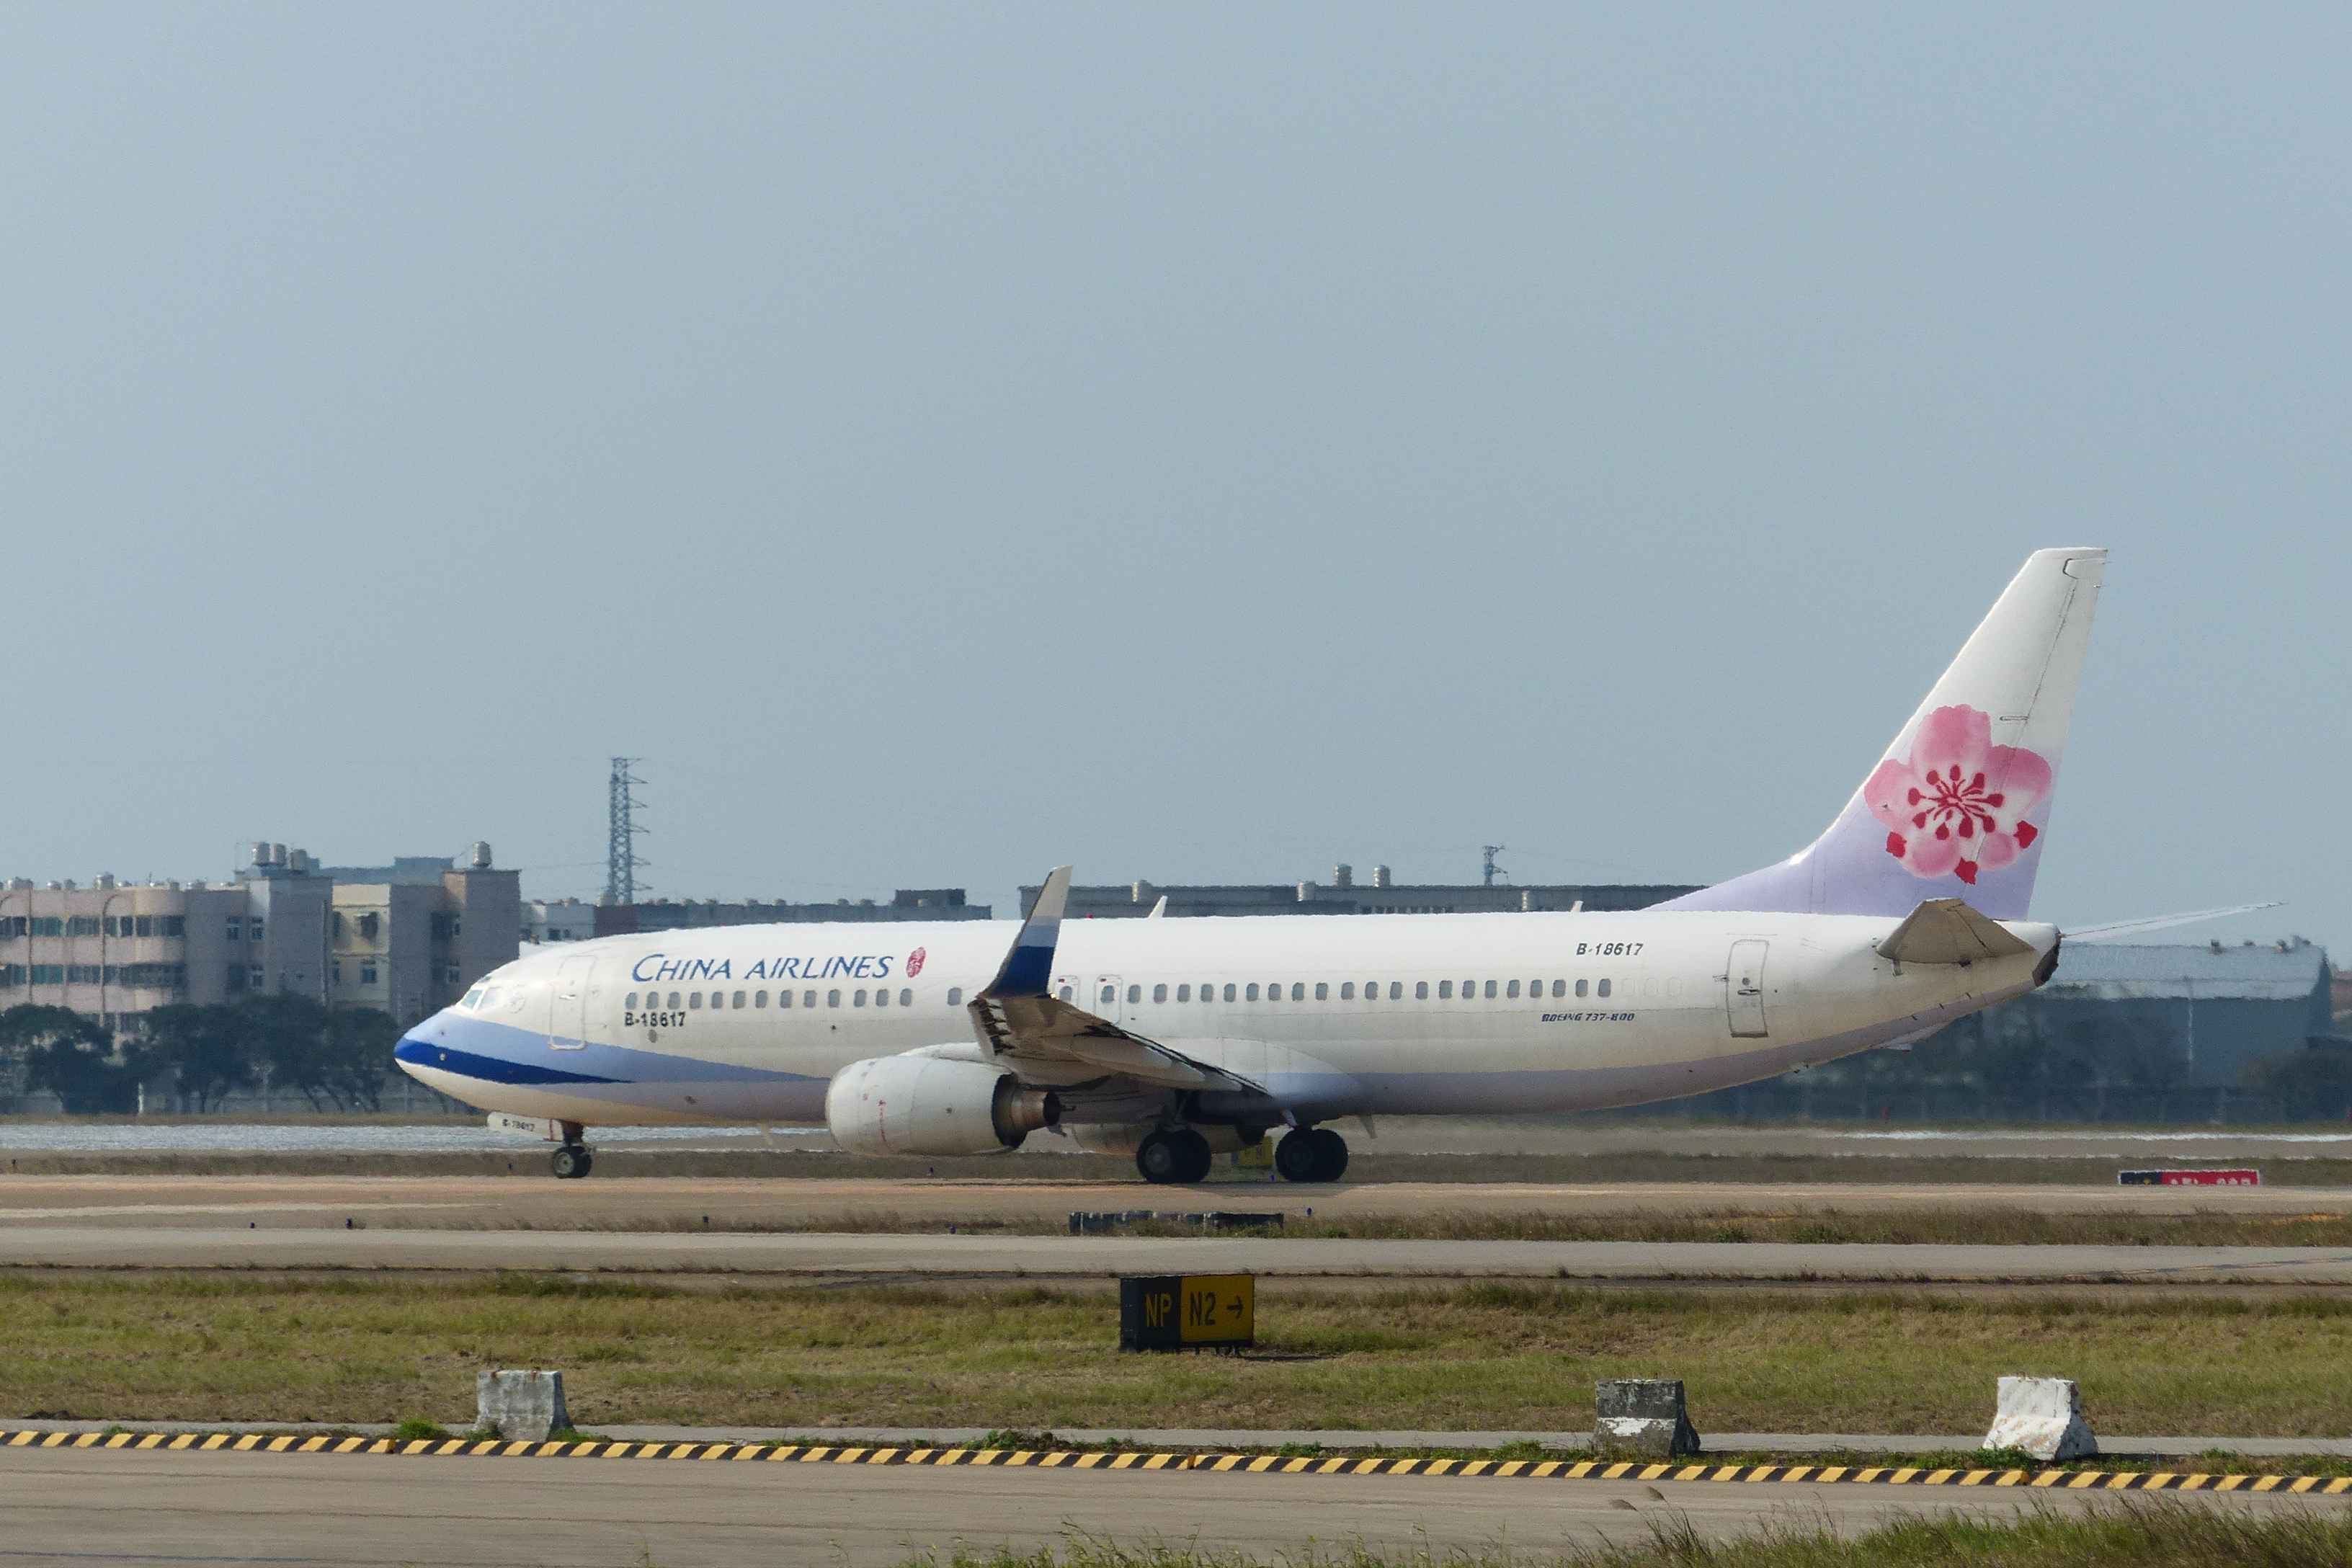 File:China Airlines Boeing 737-800 B-18617 Taxiing at Taoyuan International Airport 20131231.jpg - Wikimedia Commons